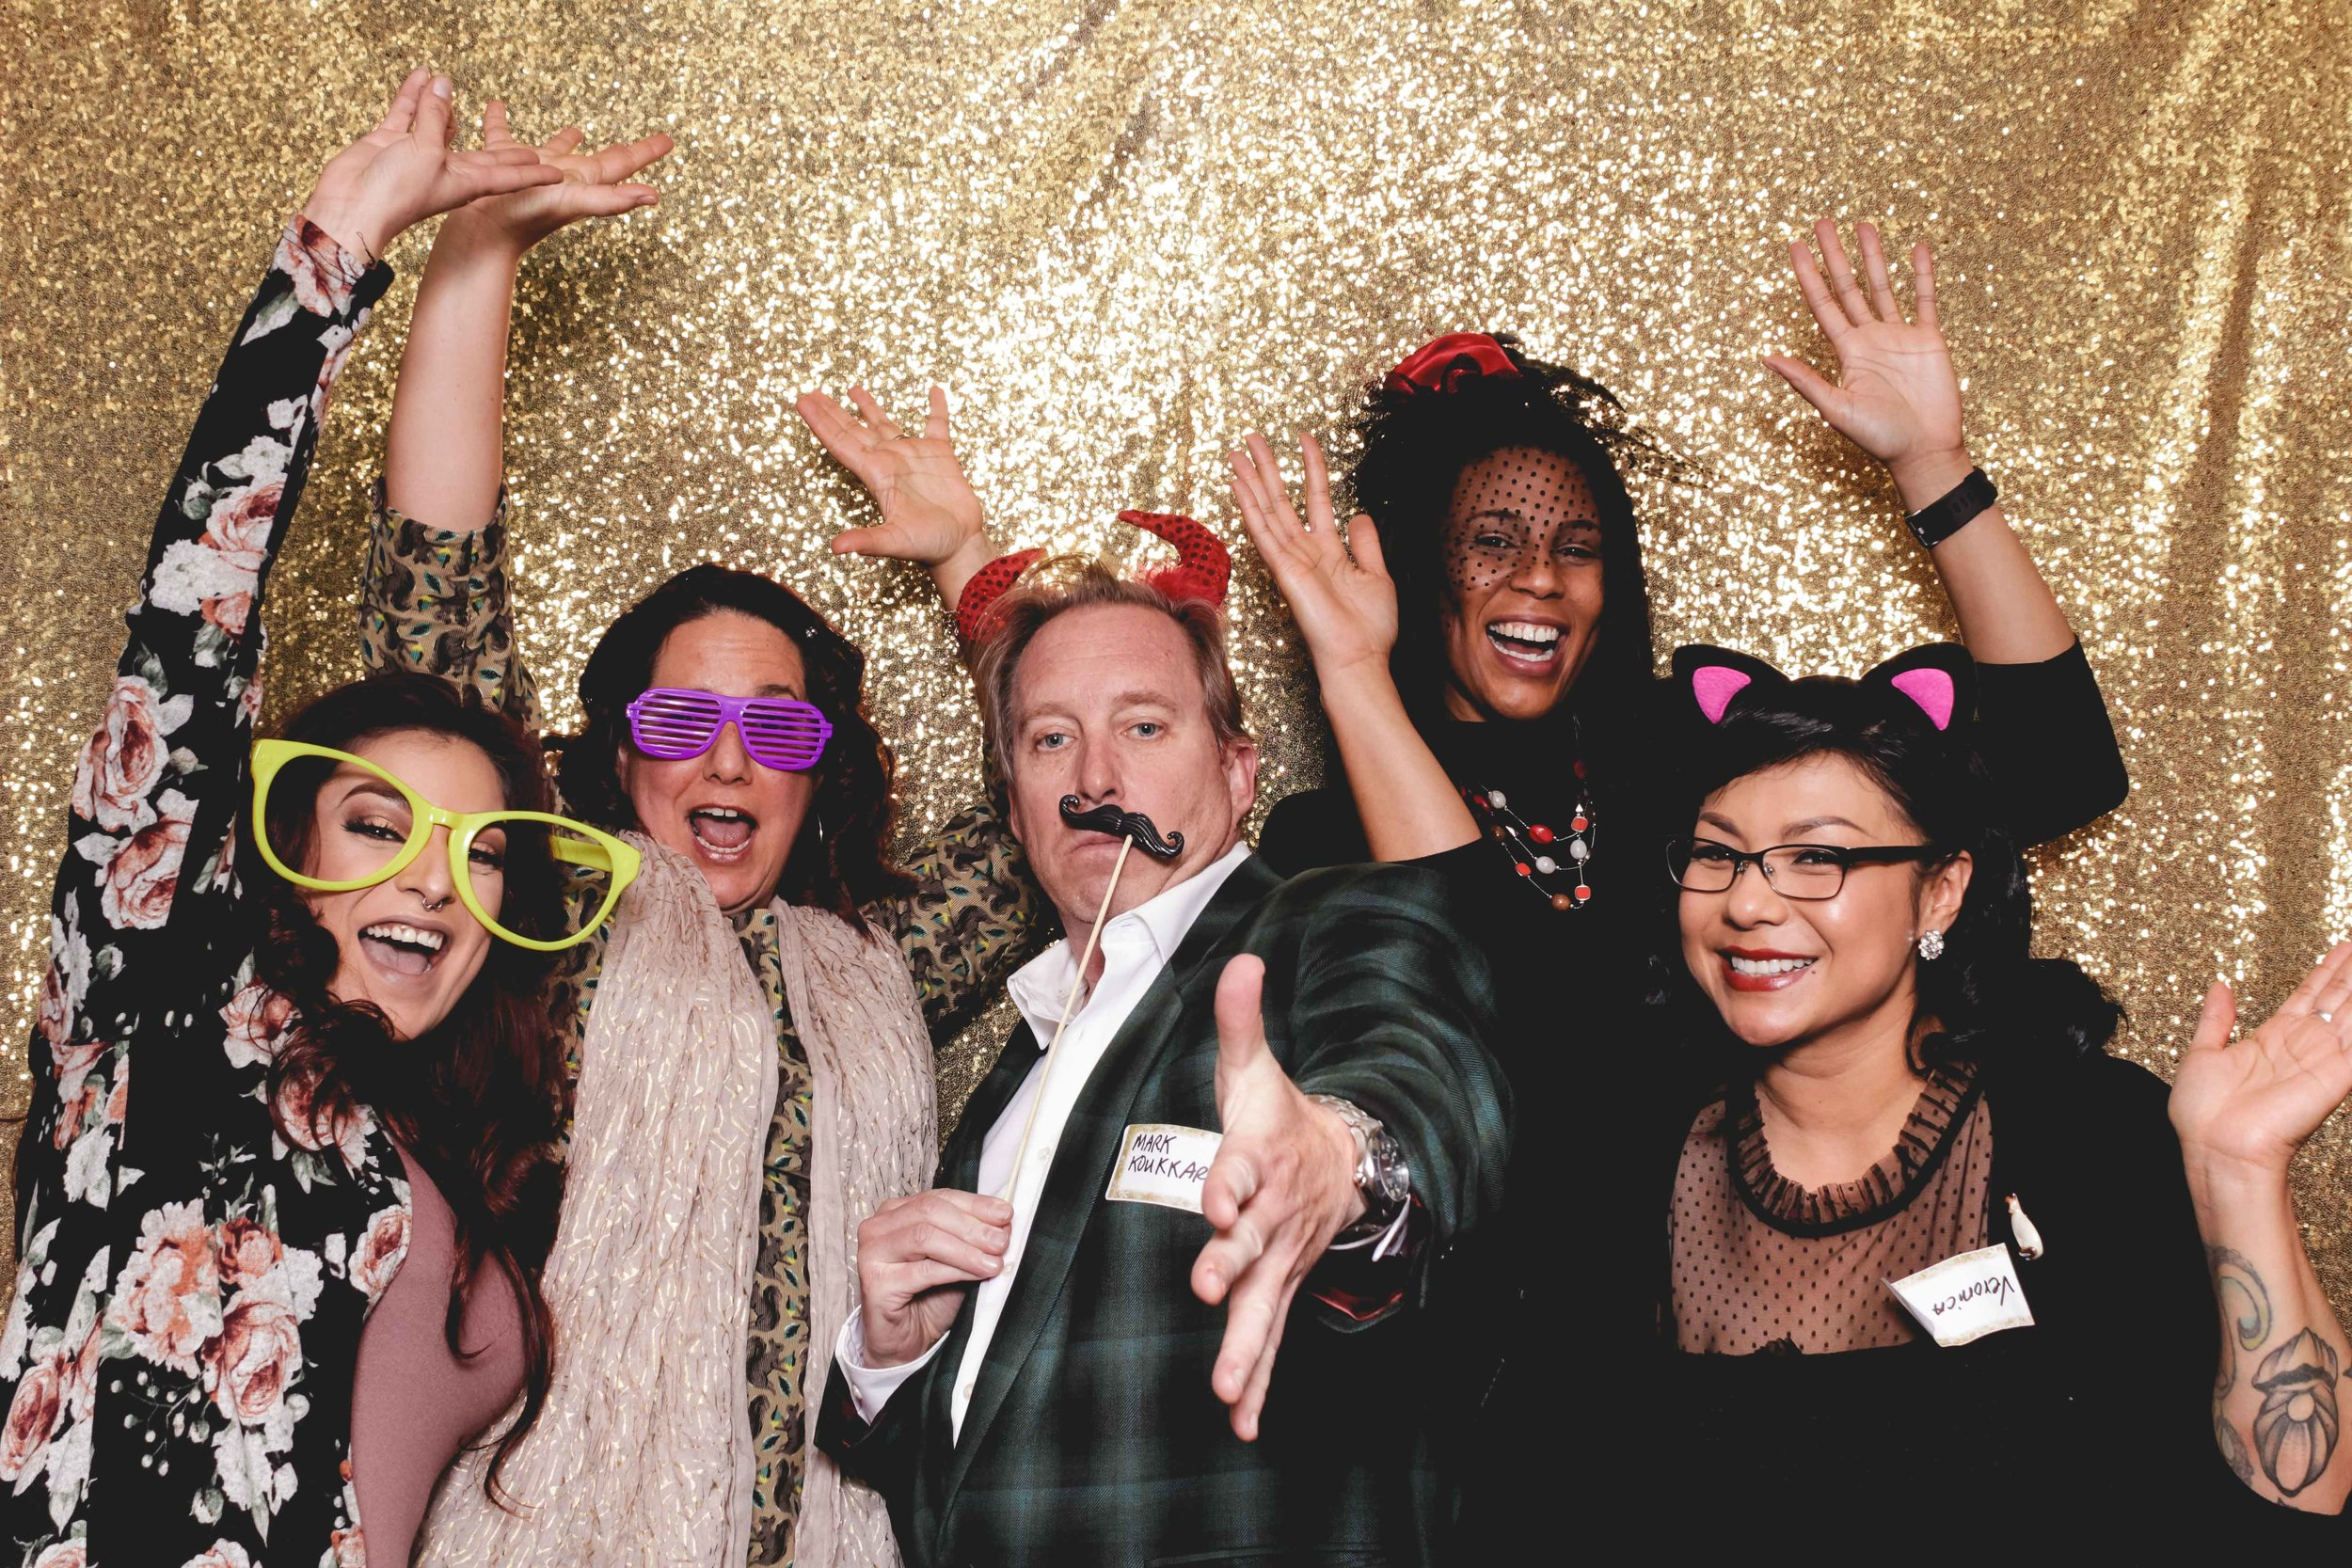 holiday_photo-booth-event-1.jpg